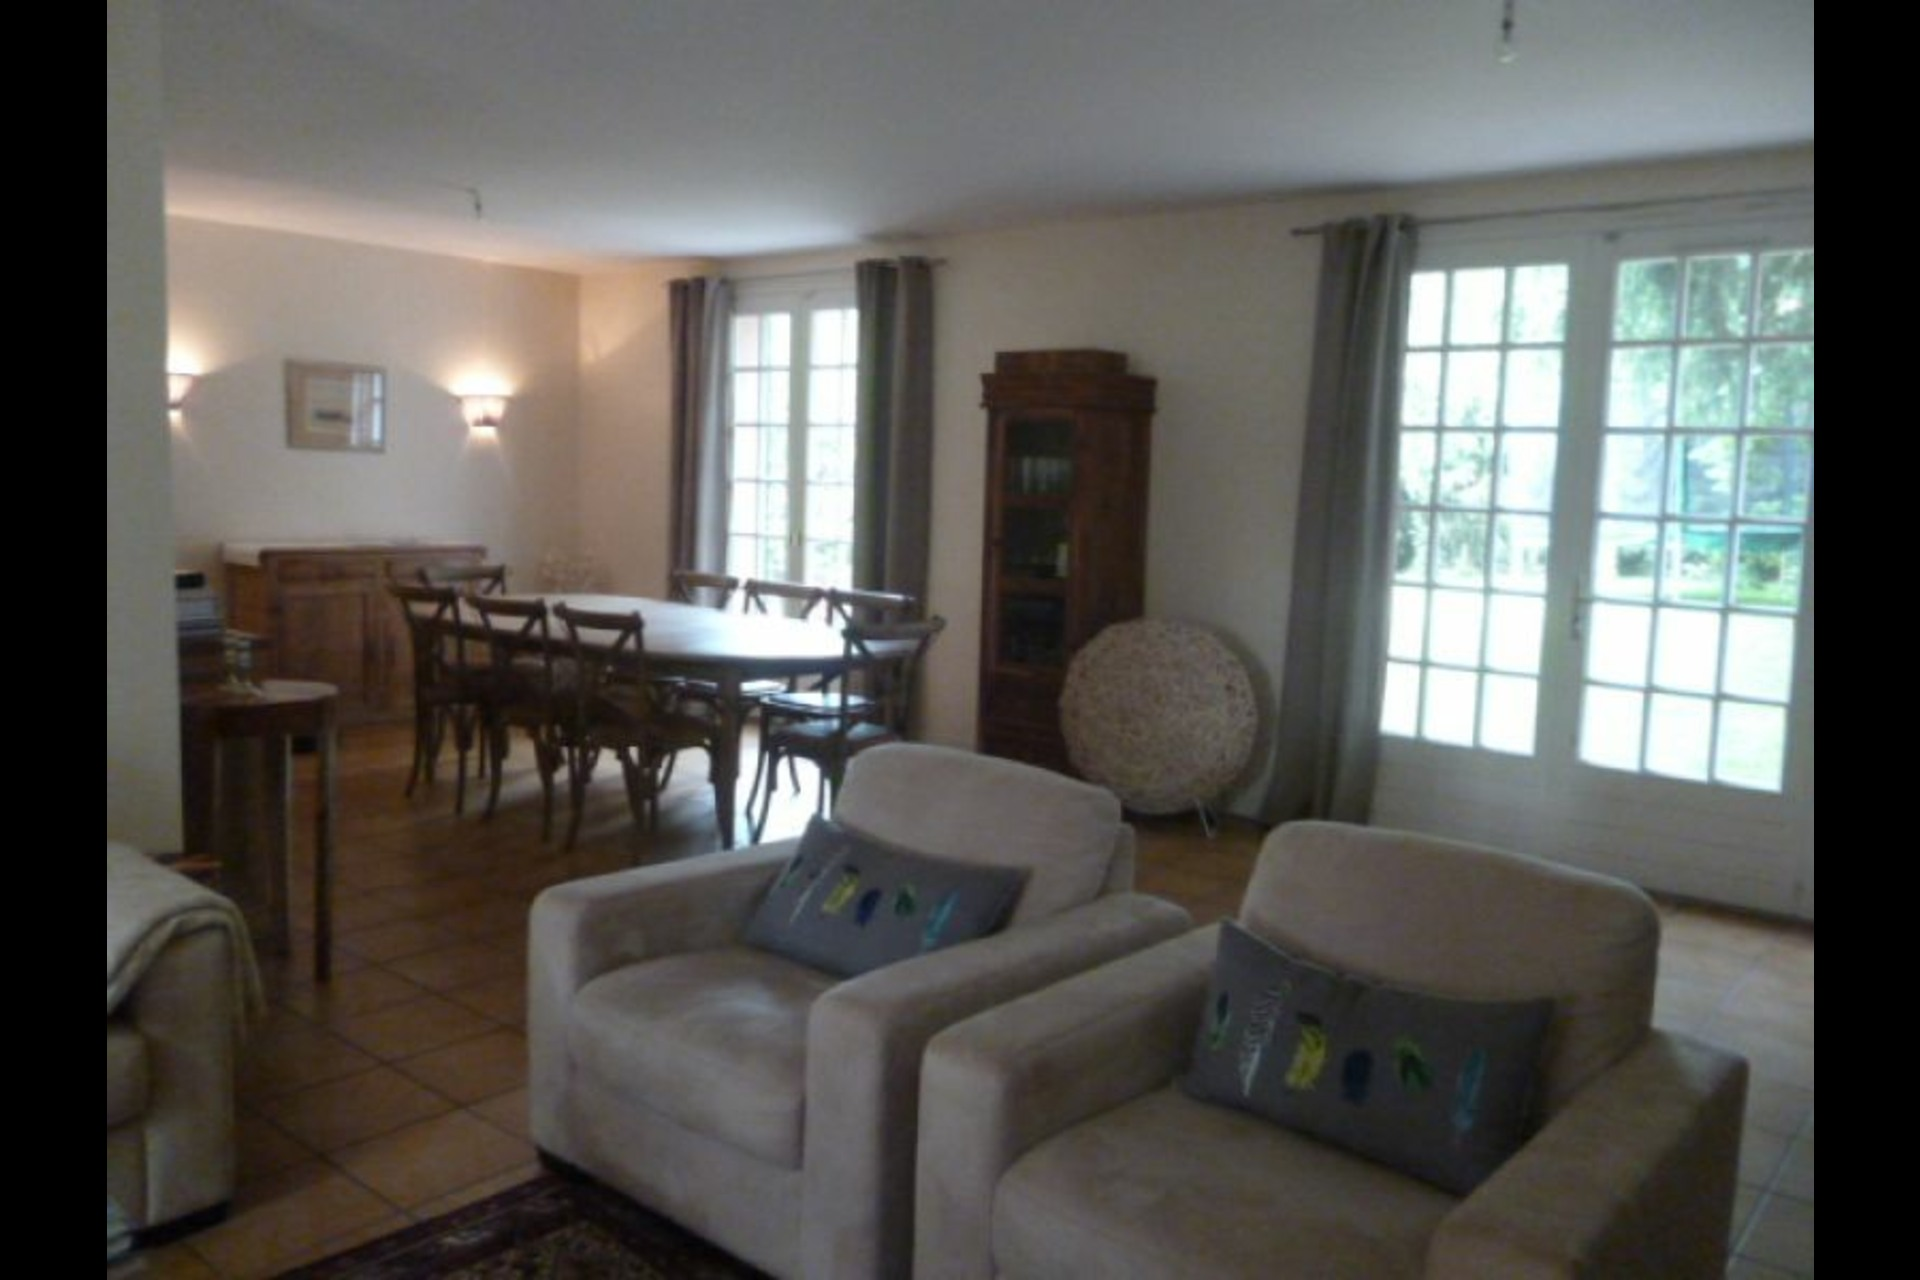 image 1 - House For rent feucherolles - 6 rooms